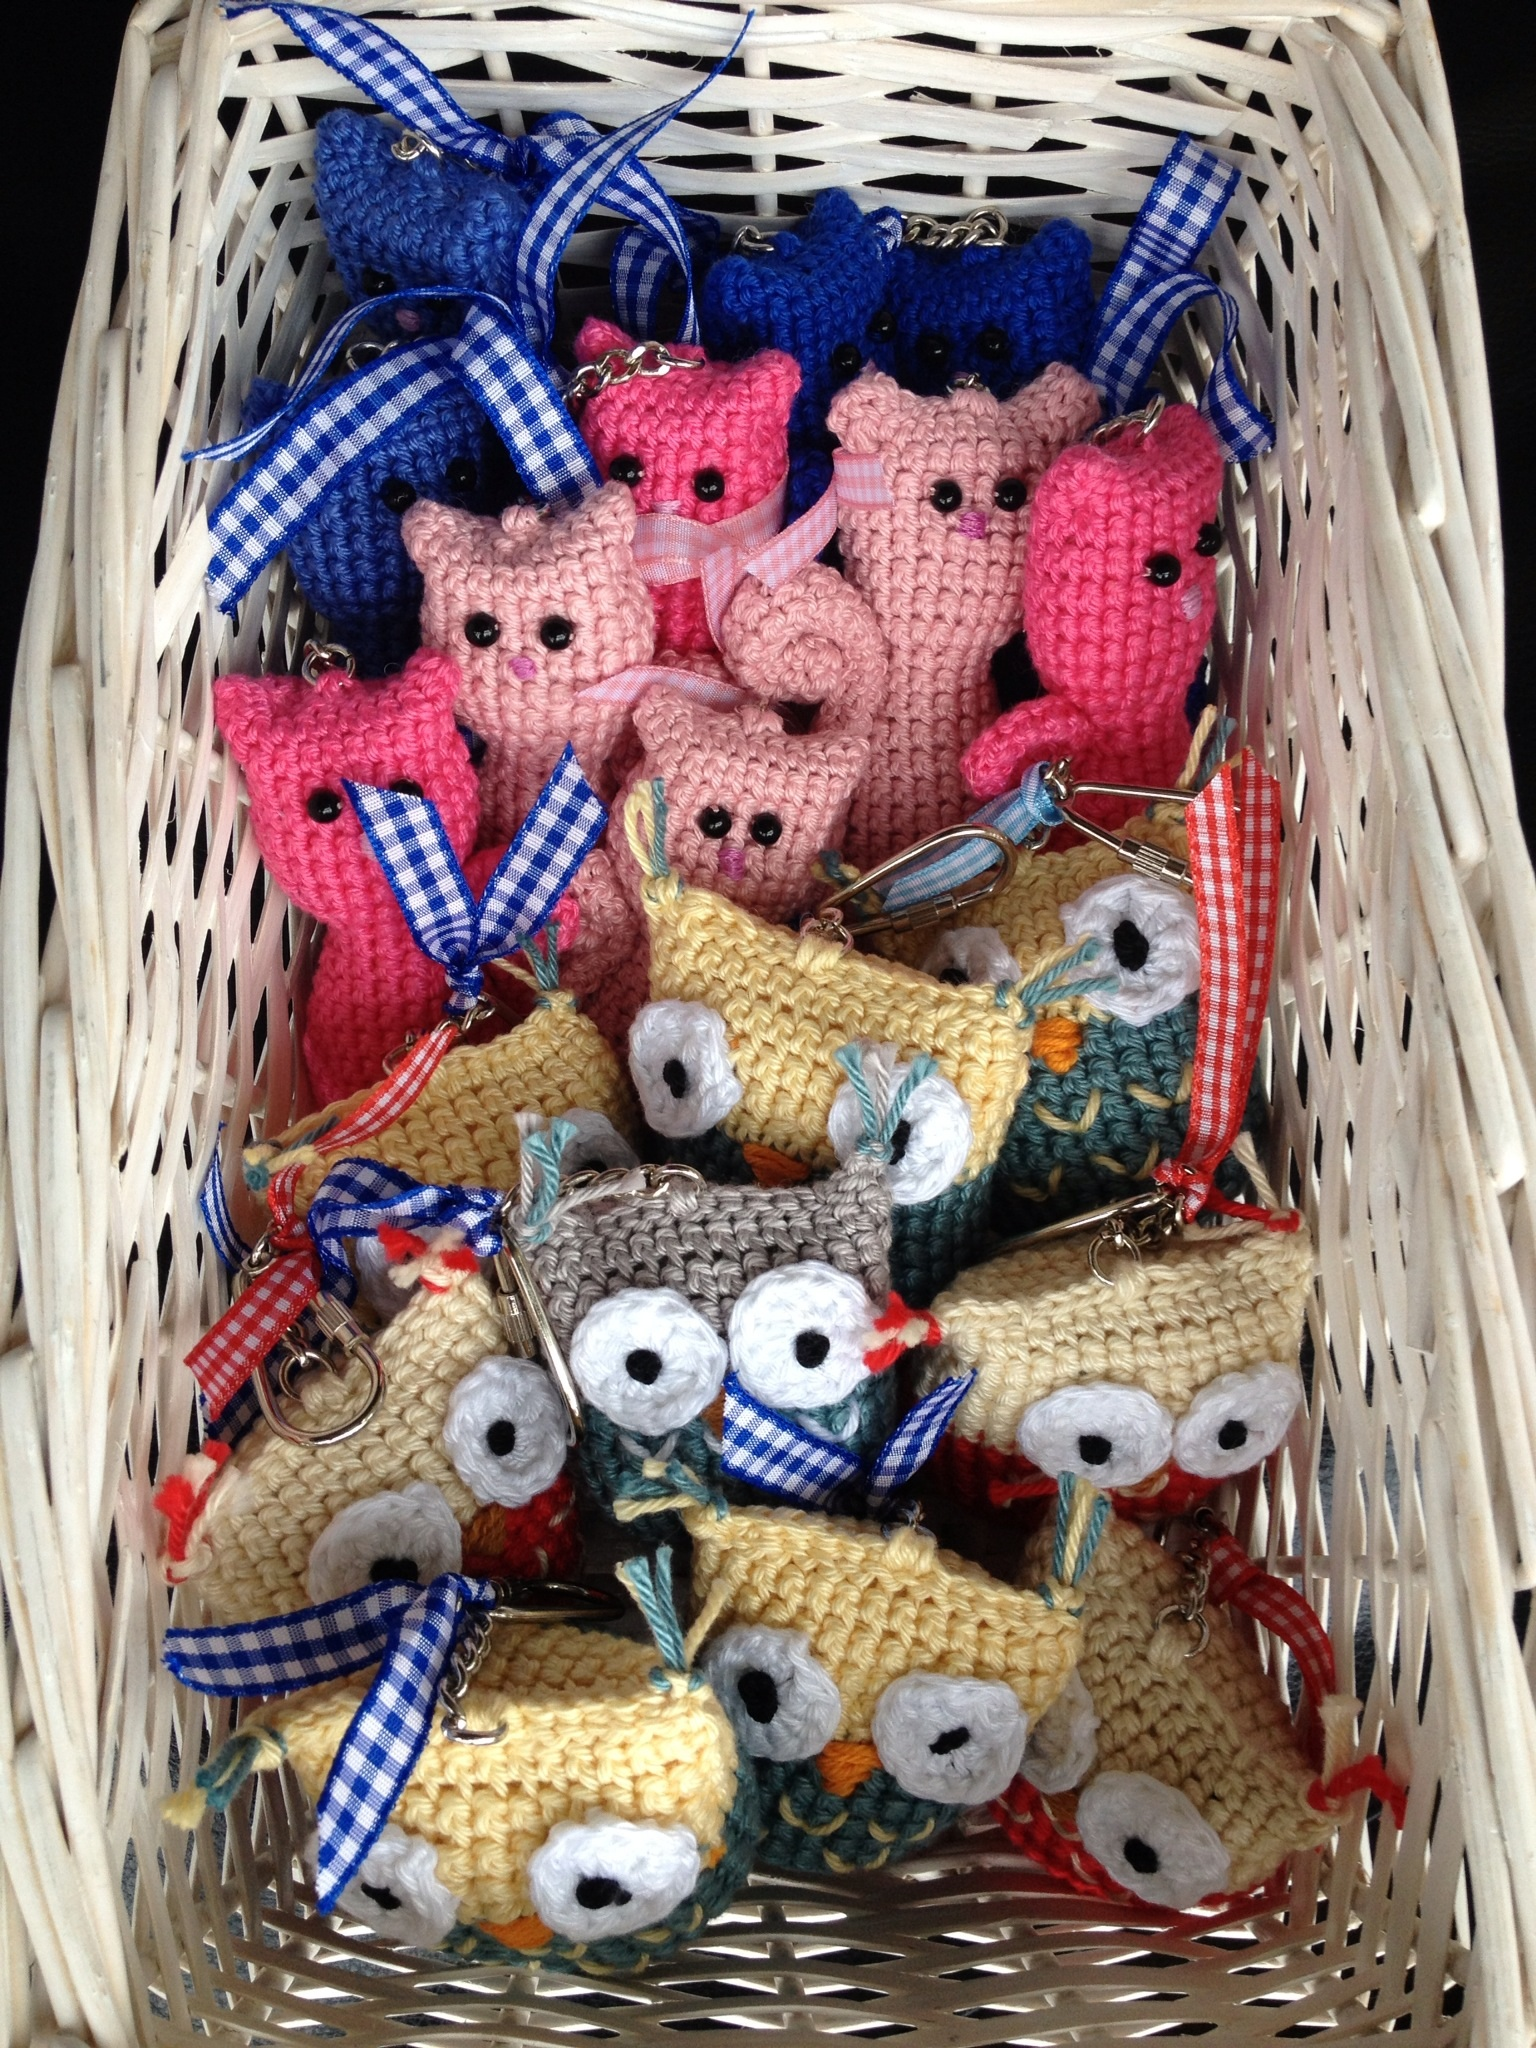 Crochet Bag Charms Ready For The Emley Moor Agricultural Show Craft Fair Tent